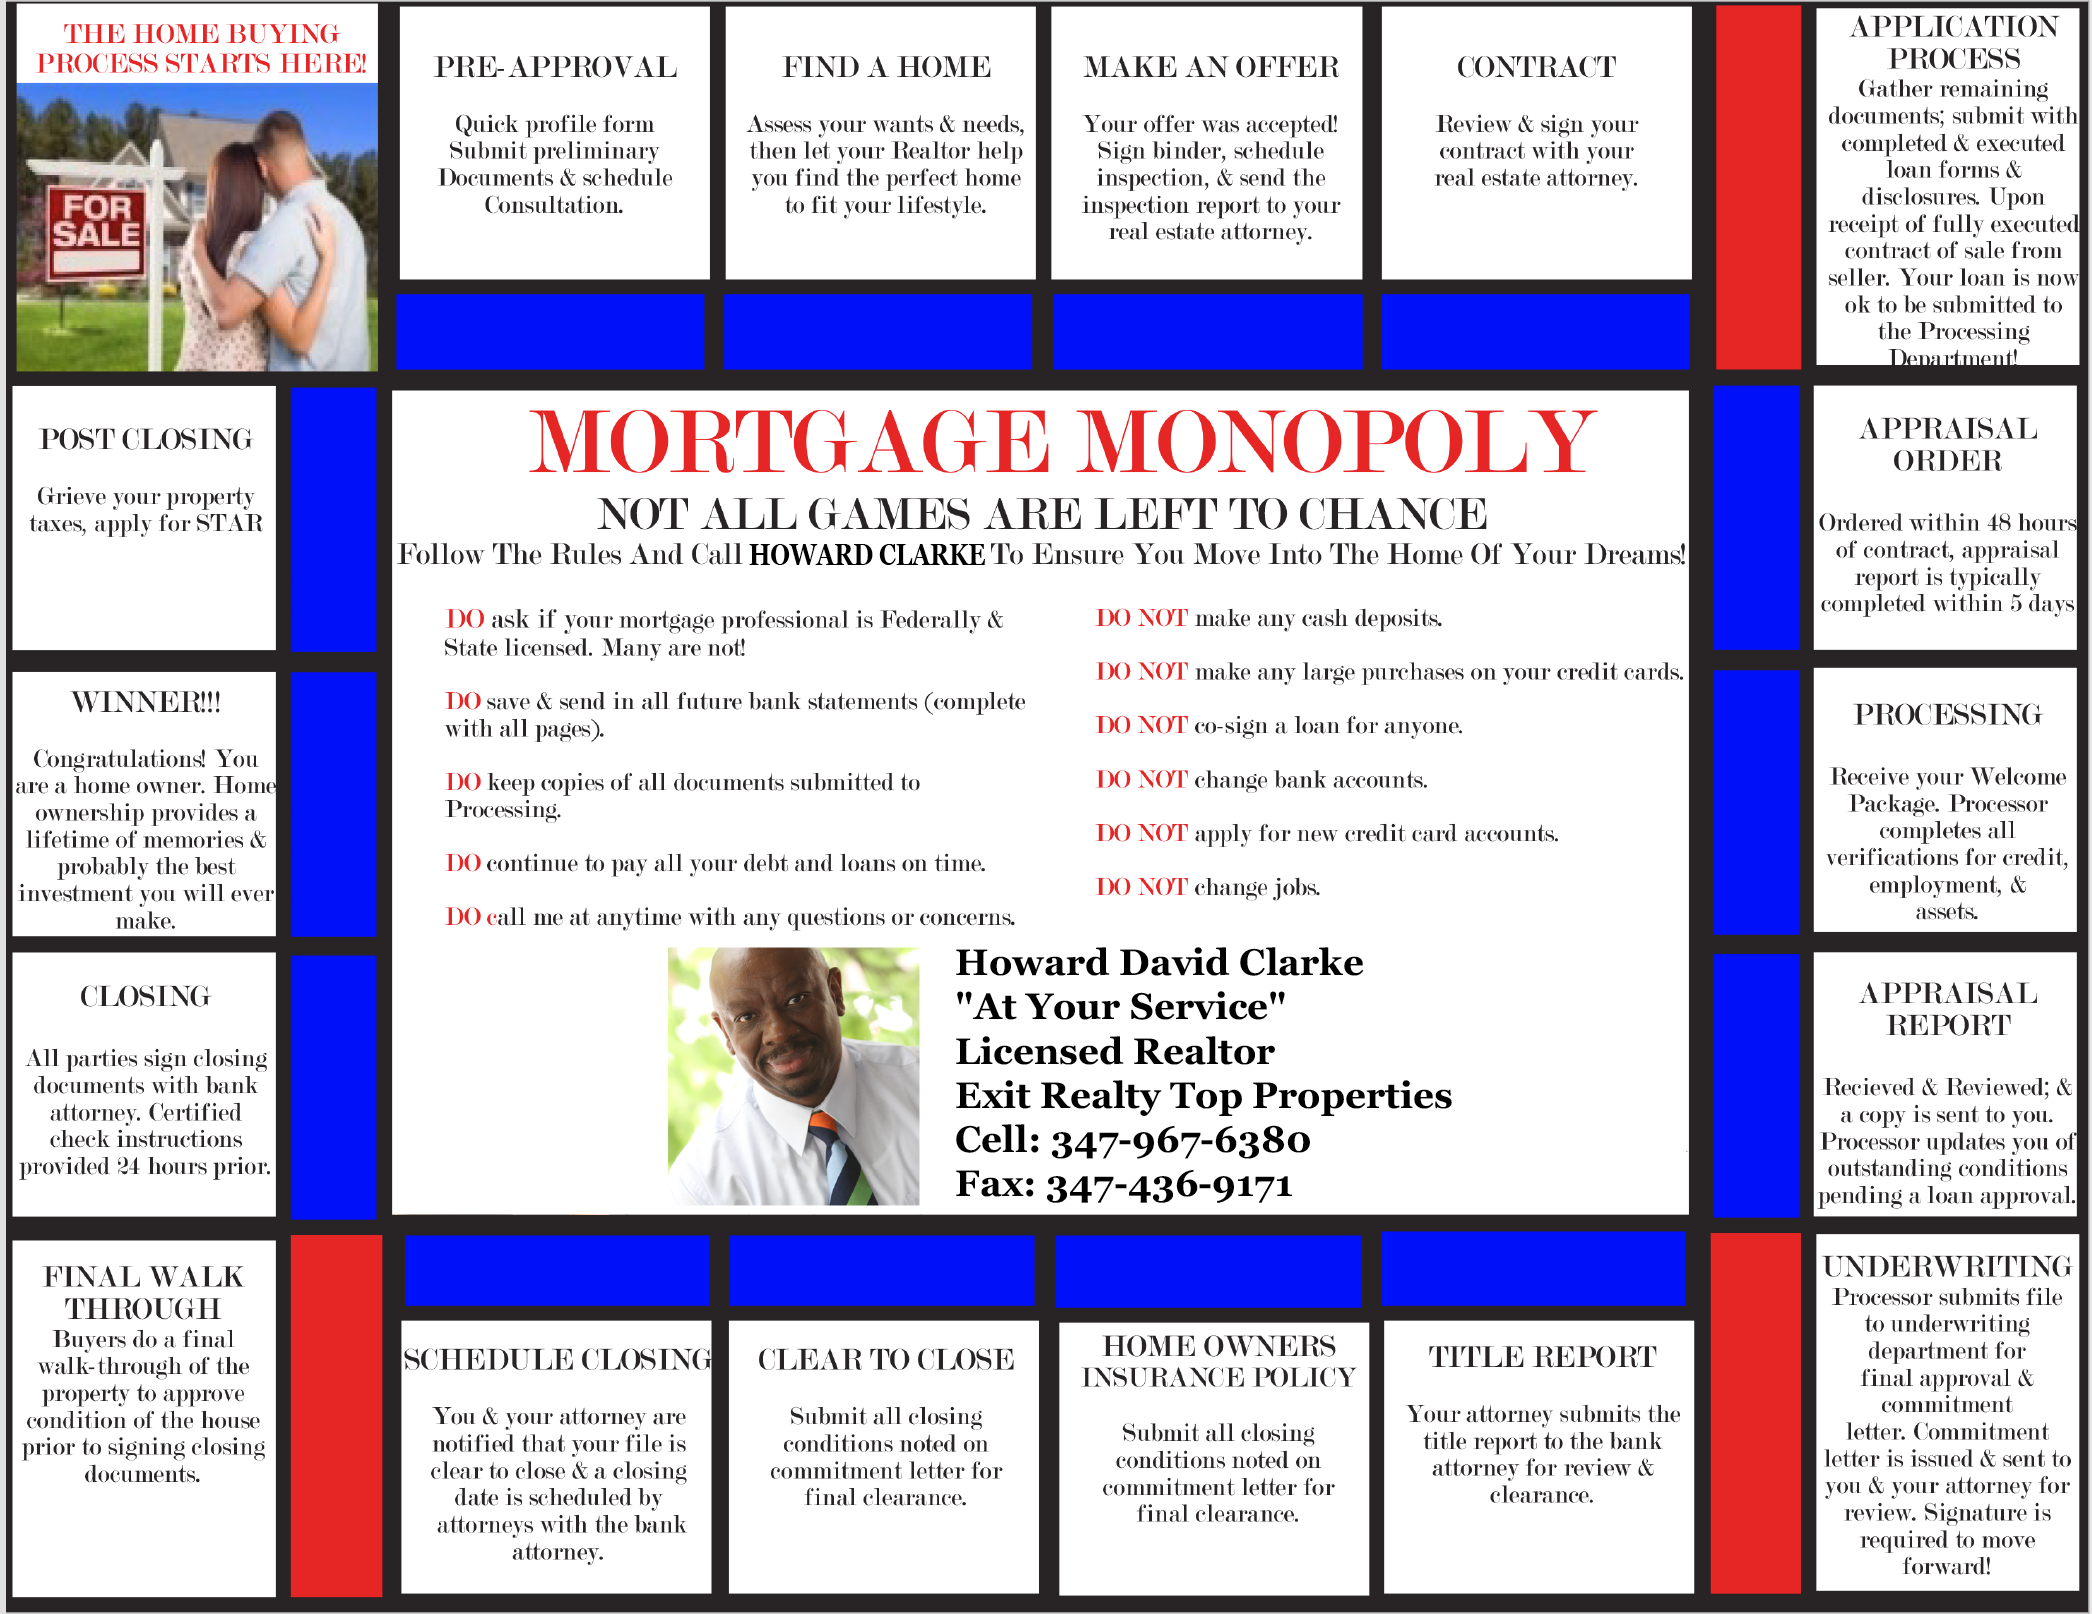 Mortgage Monopoly.png